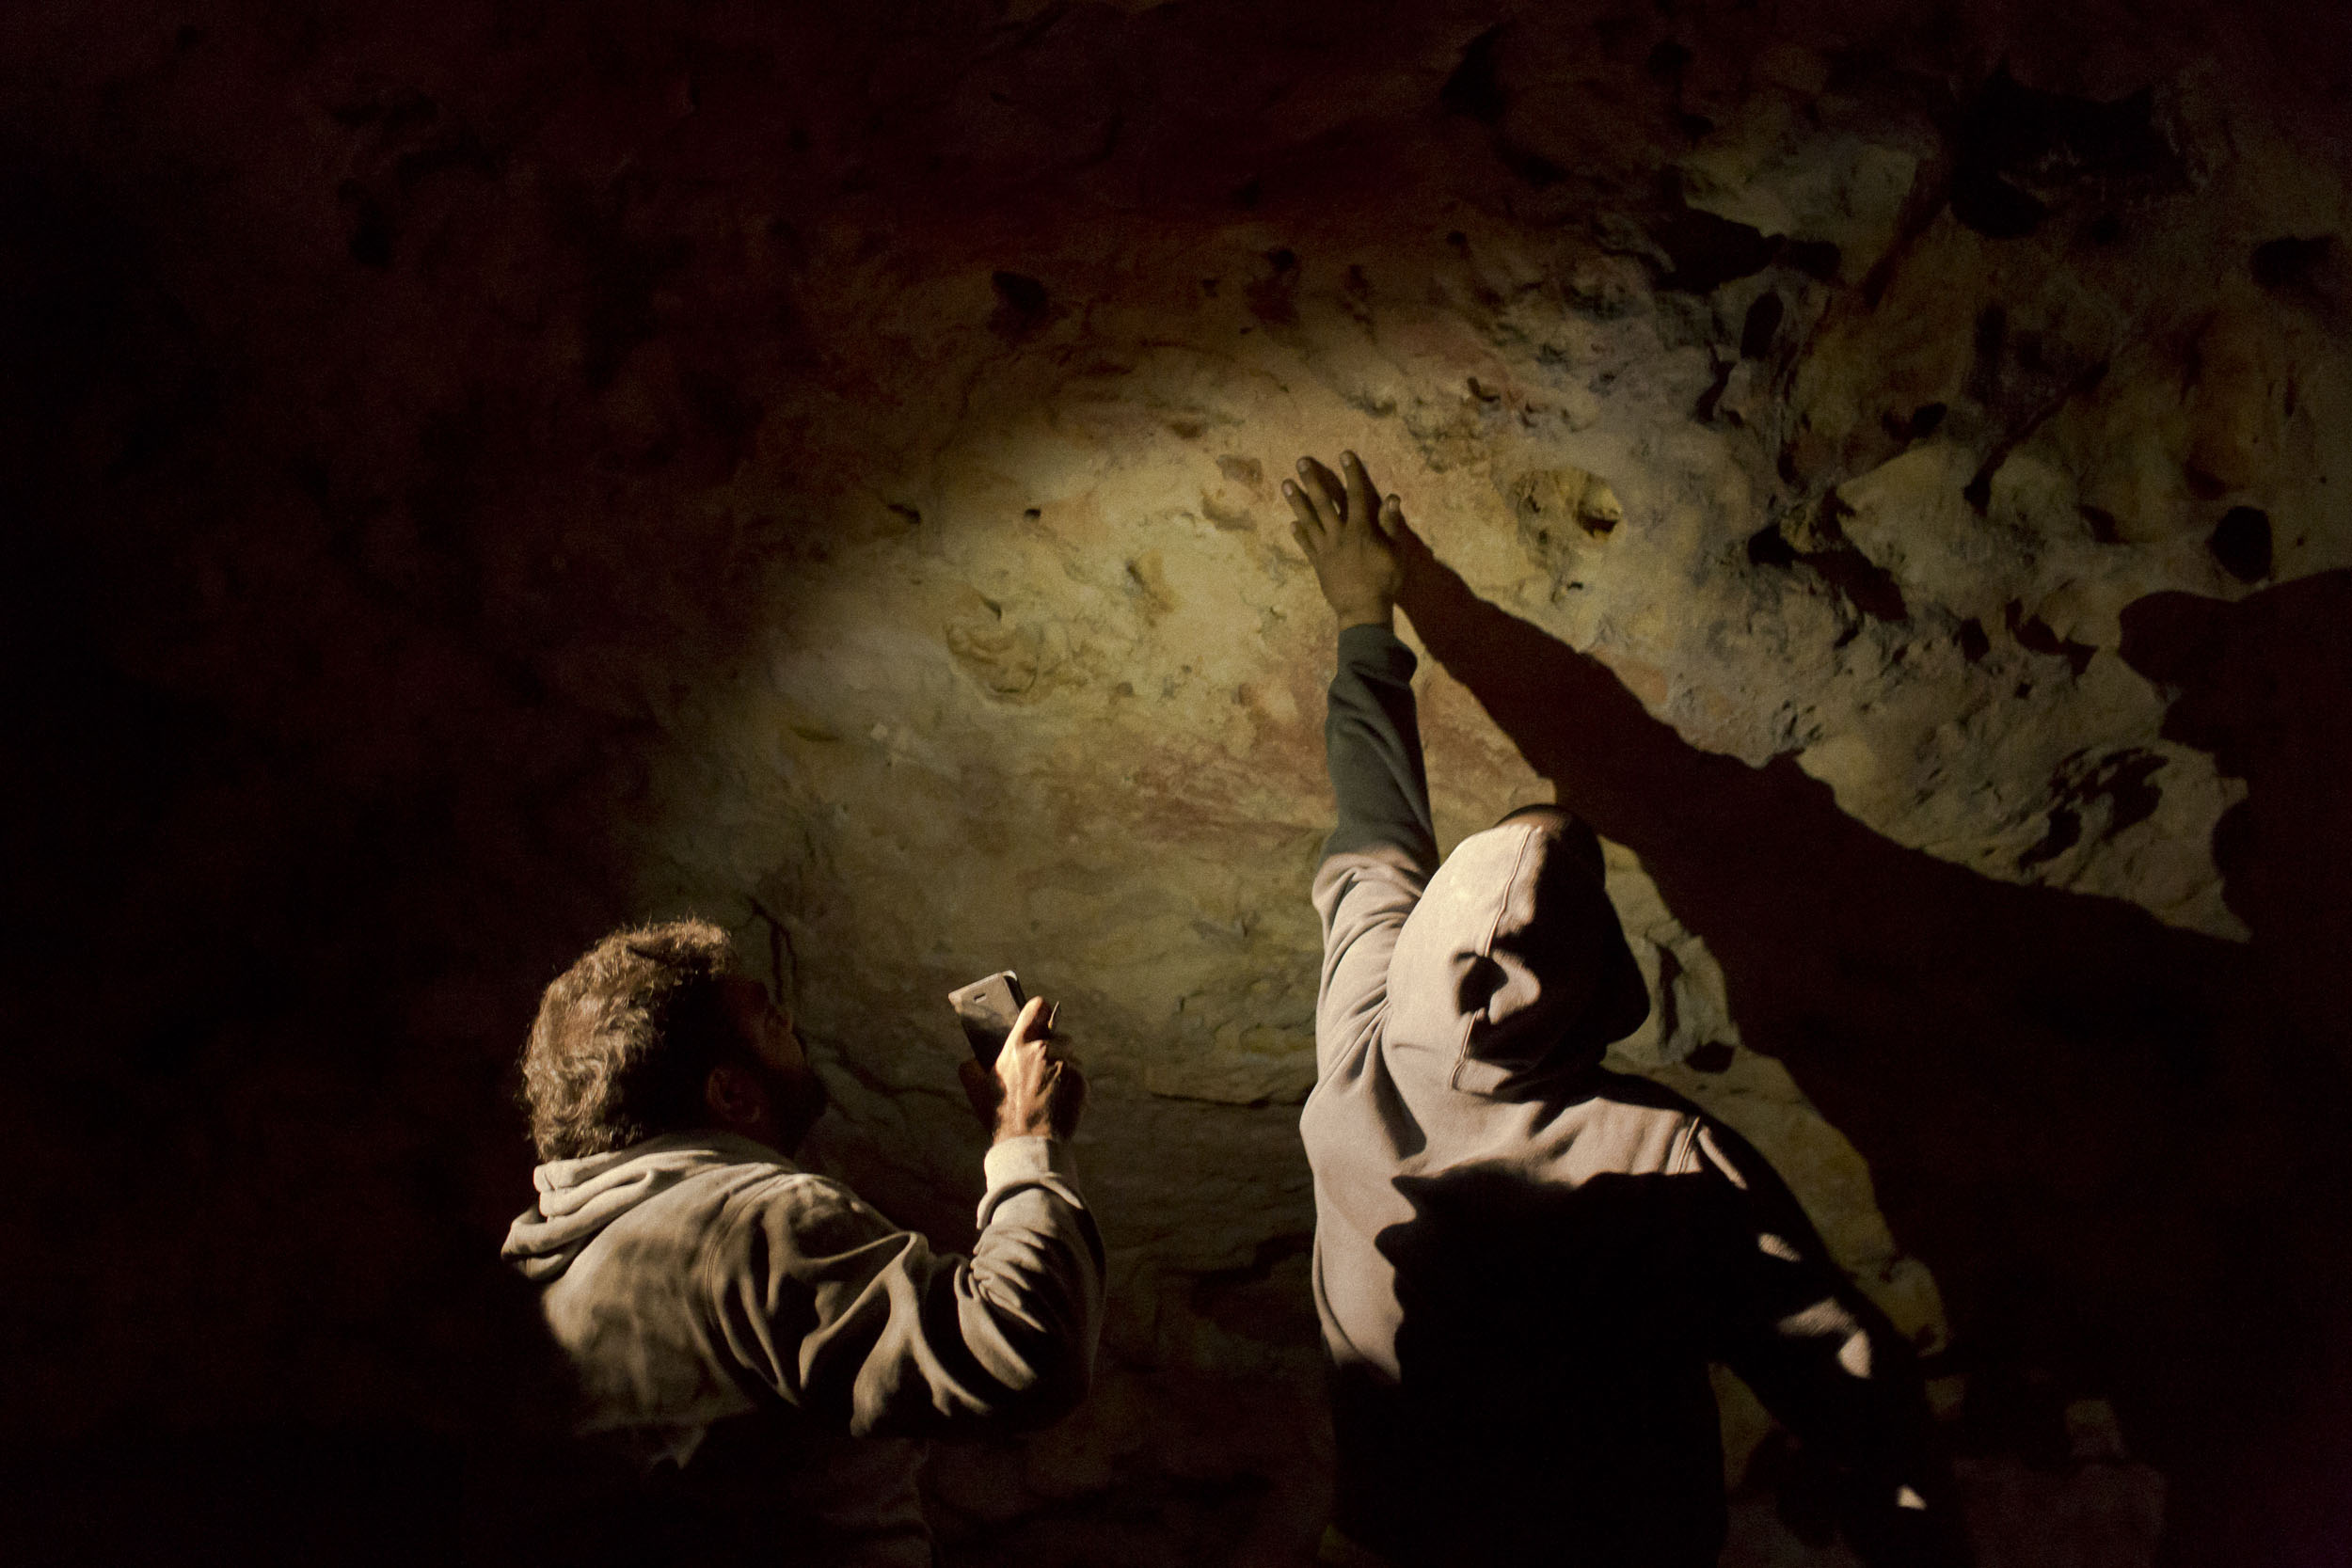 Pitjantjatjara Aboriginal men look at ancient paintings in a cave on the Nullarbor Plain, Yalata, South Australia.